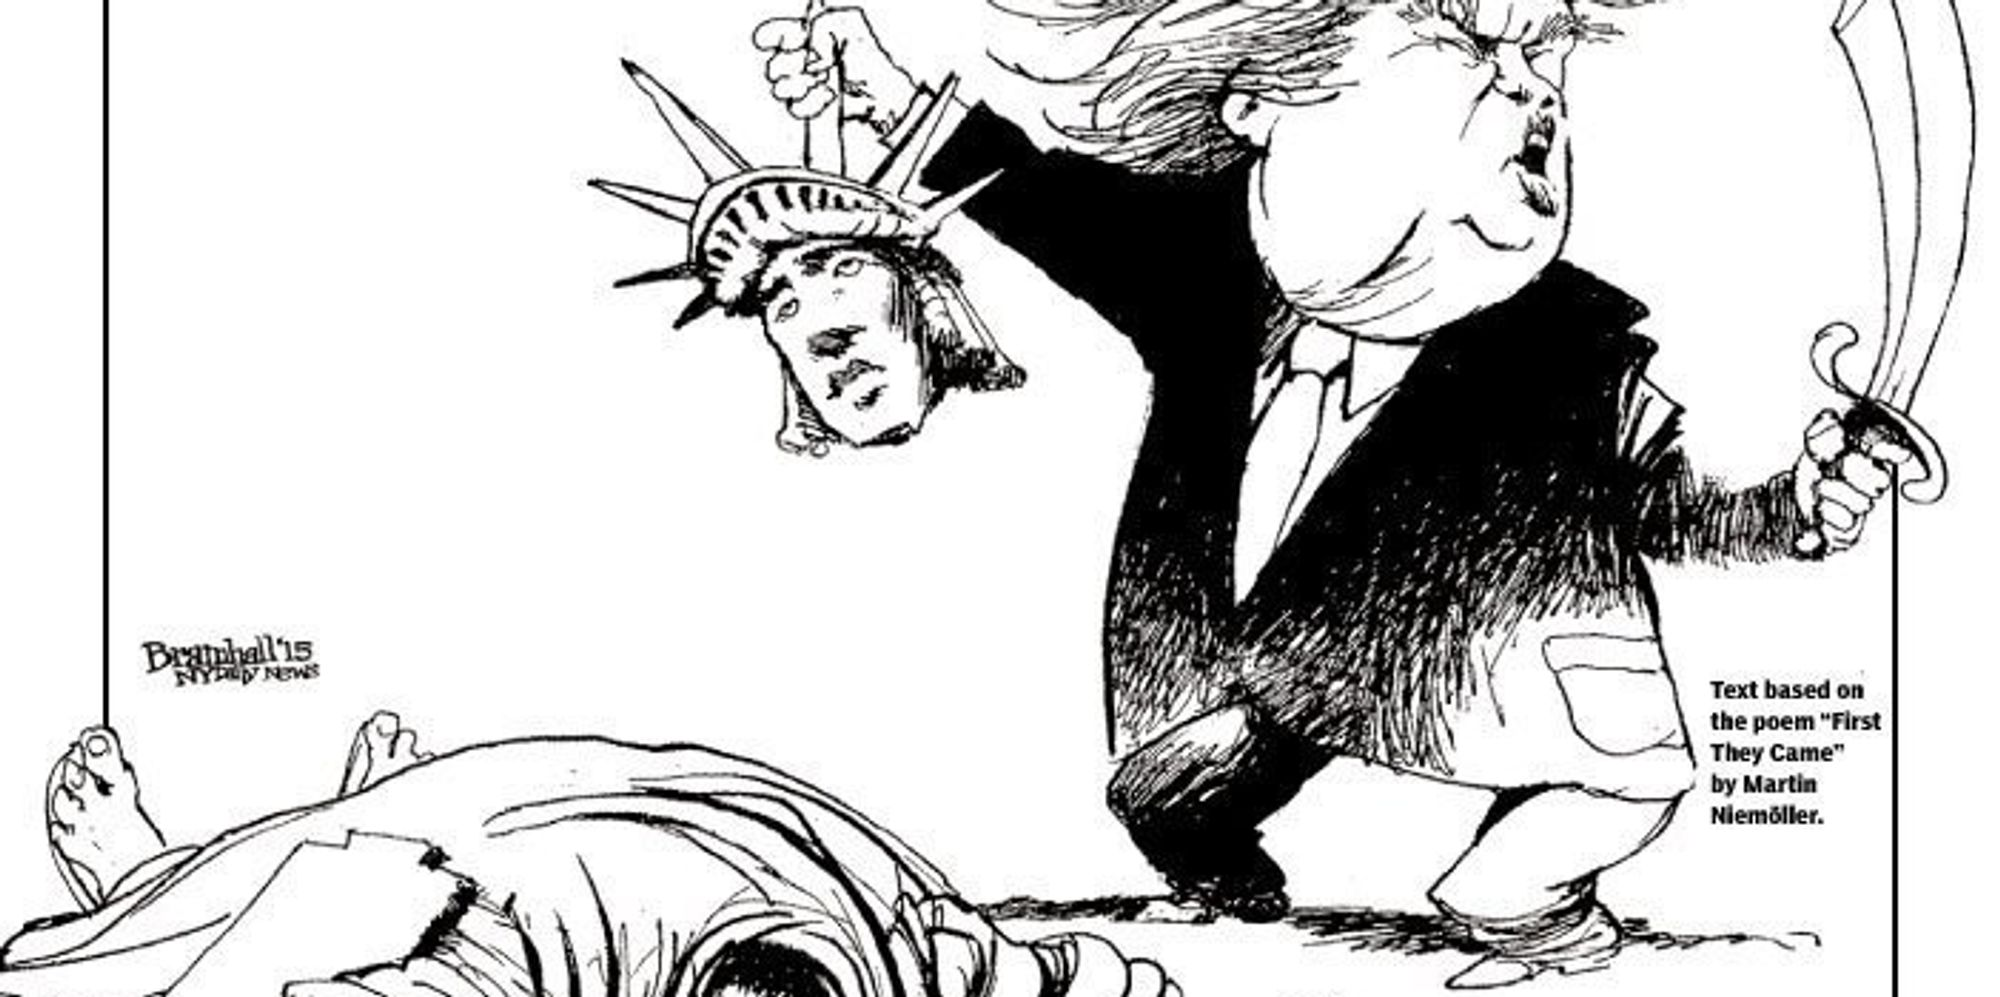 NY Daily News Cover Shows Donald Trump Beheading Statue Of